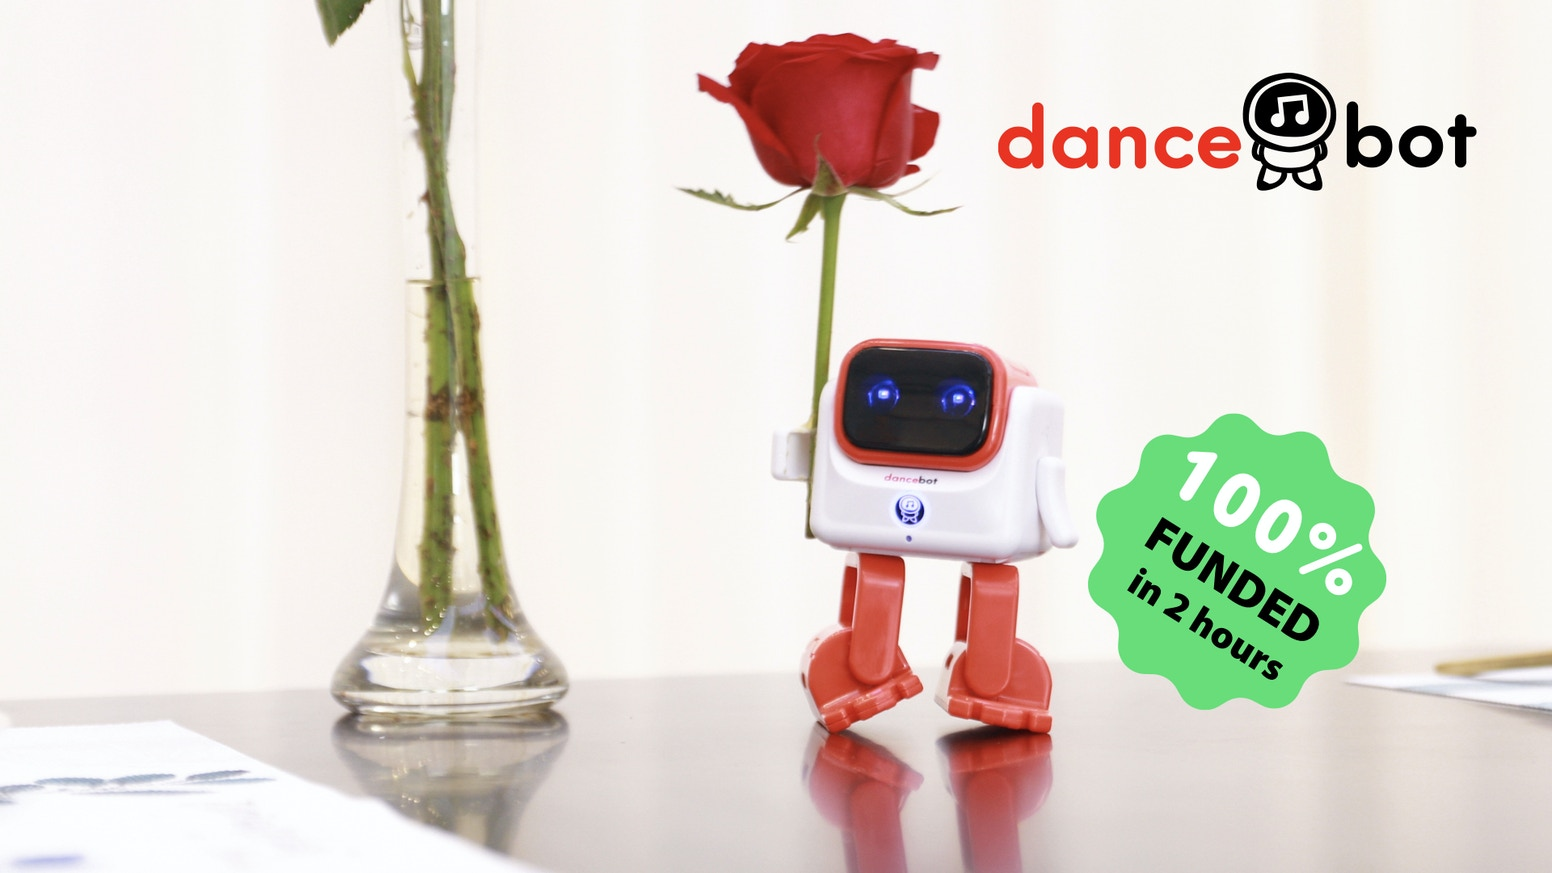 Now Available on Amazon US Marketplace. A robot speaker that dances to the sound it plays, be it music, audiobooks, podcasts or even voice messages!